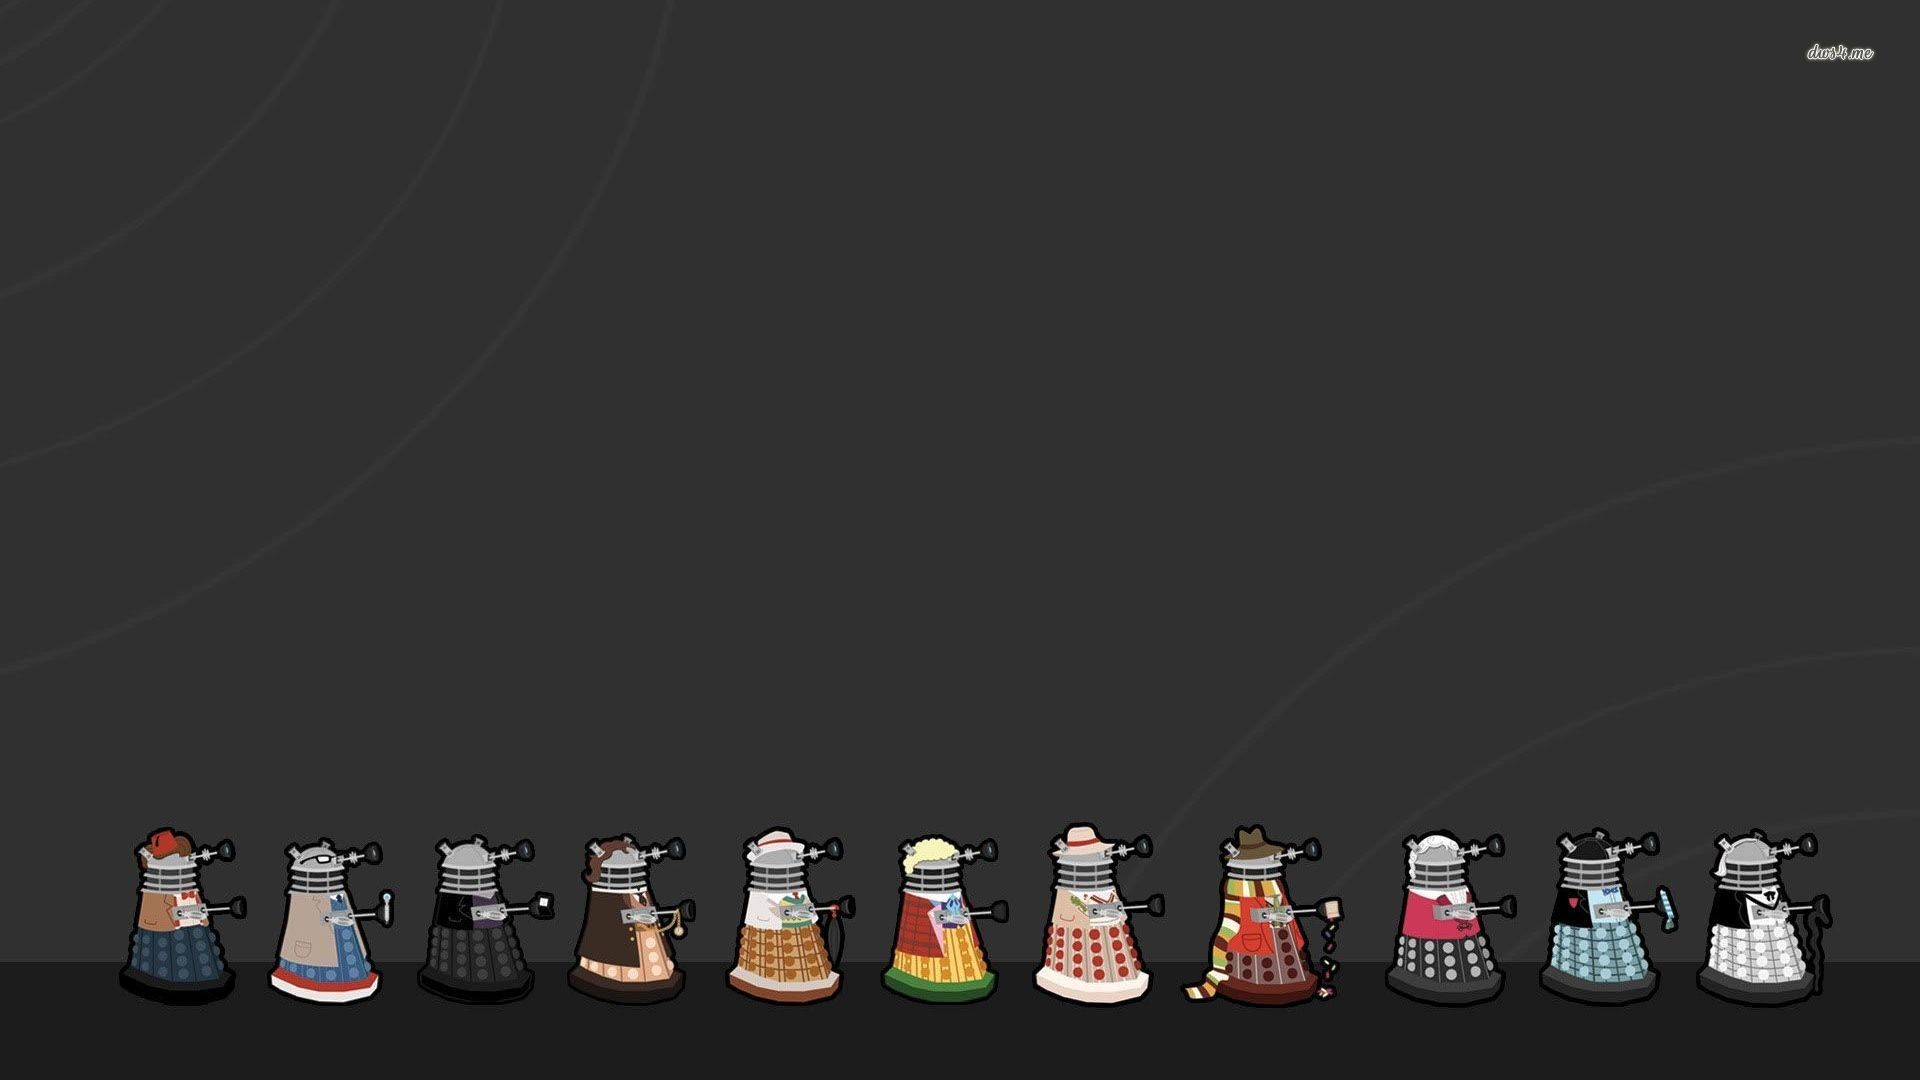 Dalek To Victory Wallpaper 75 Images